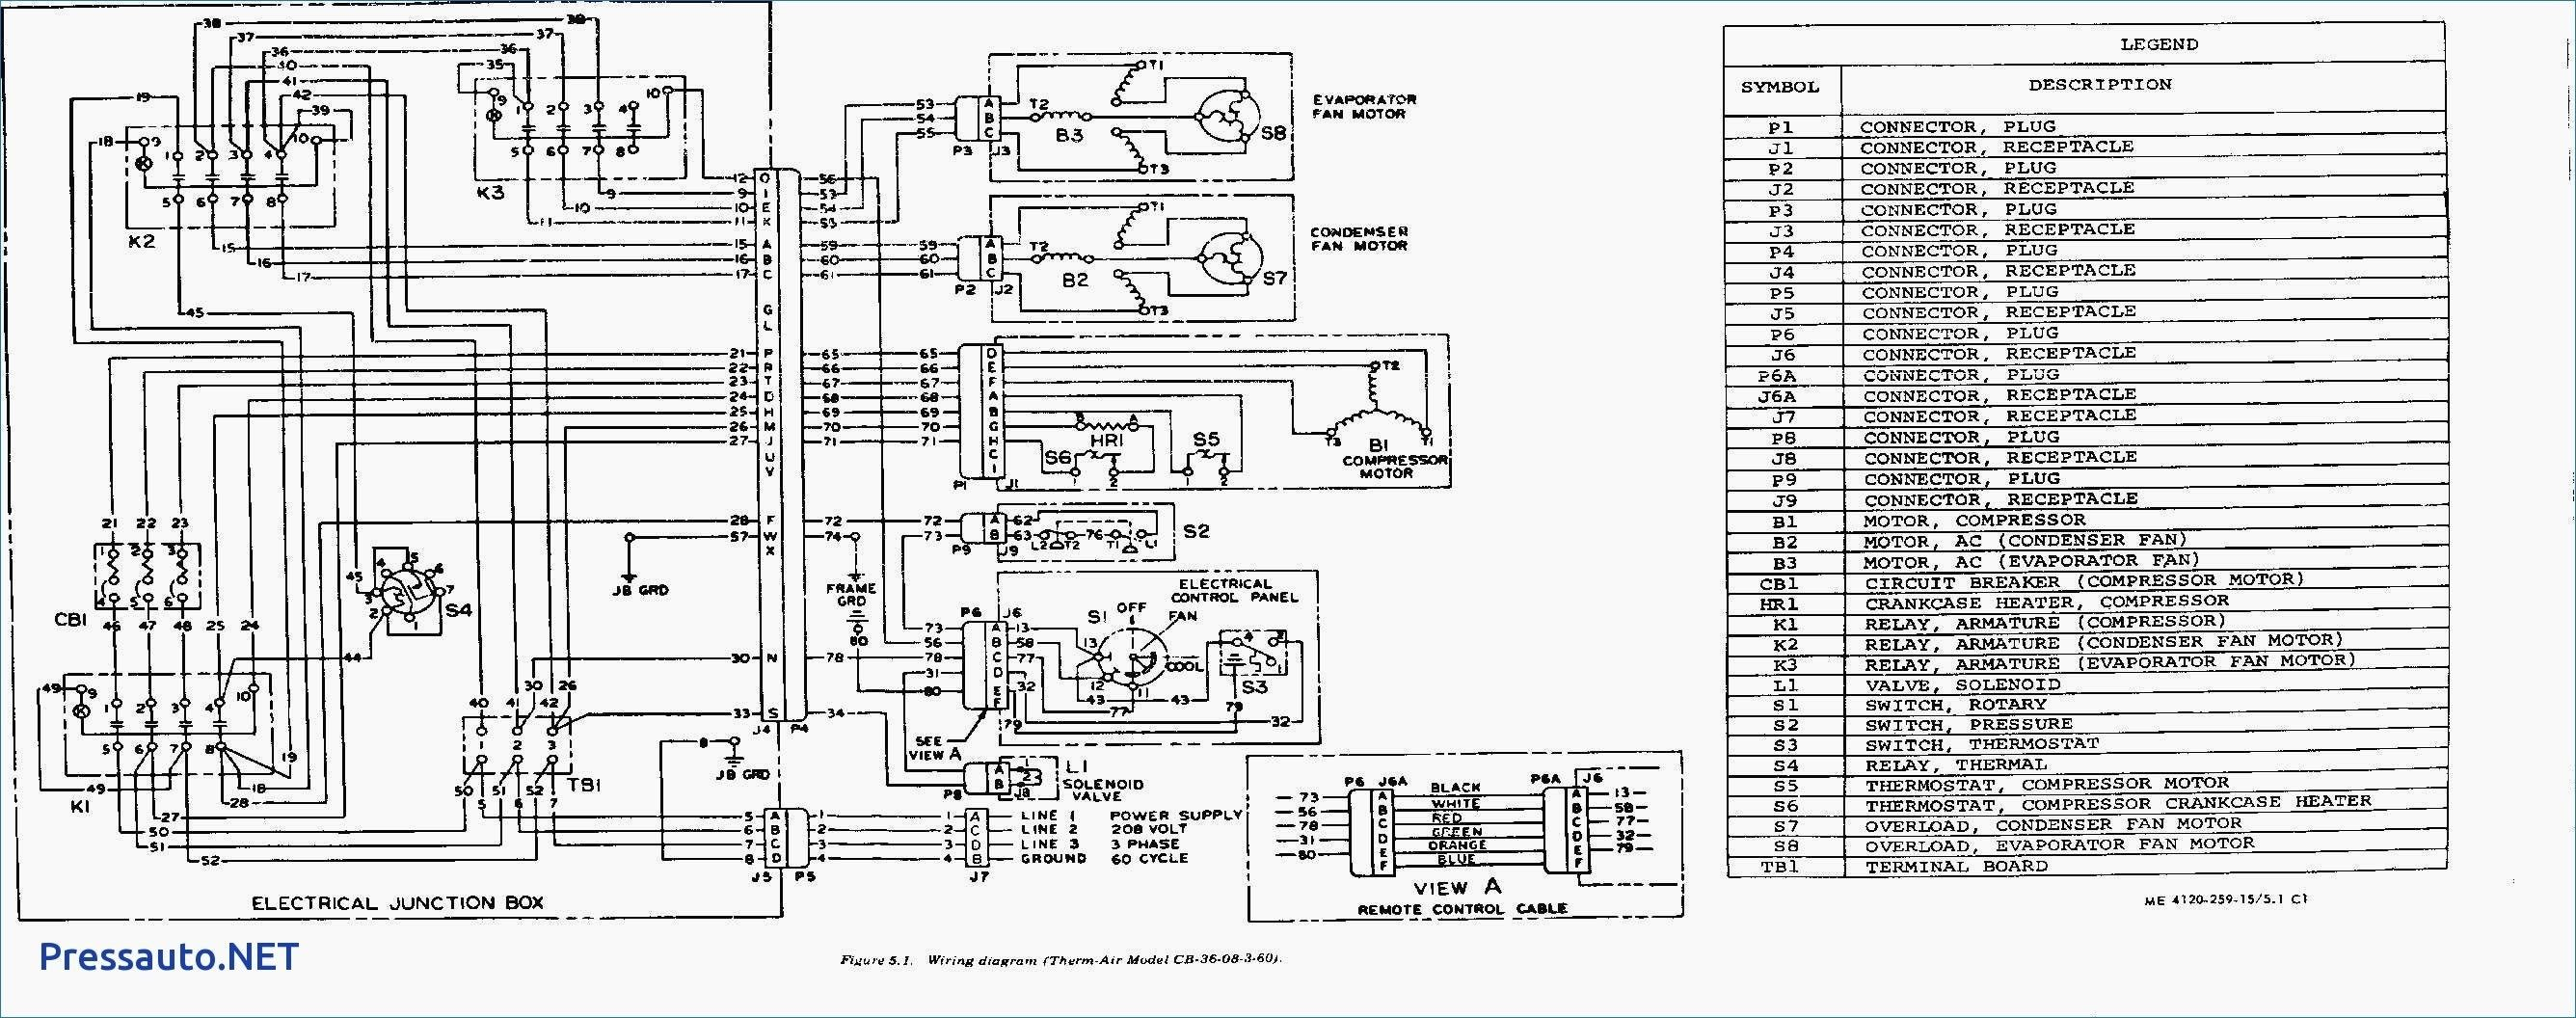 New Electric Diagram Diagram Wiringdiagram Diagramming Diagramm Visuals Visualisation Graphical Check More At Https Th Diagram Trane Thermostat Wiring